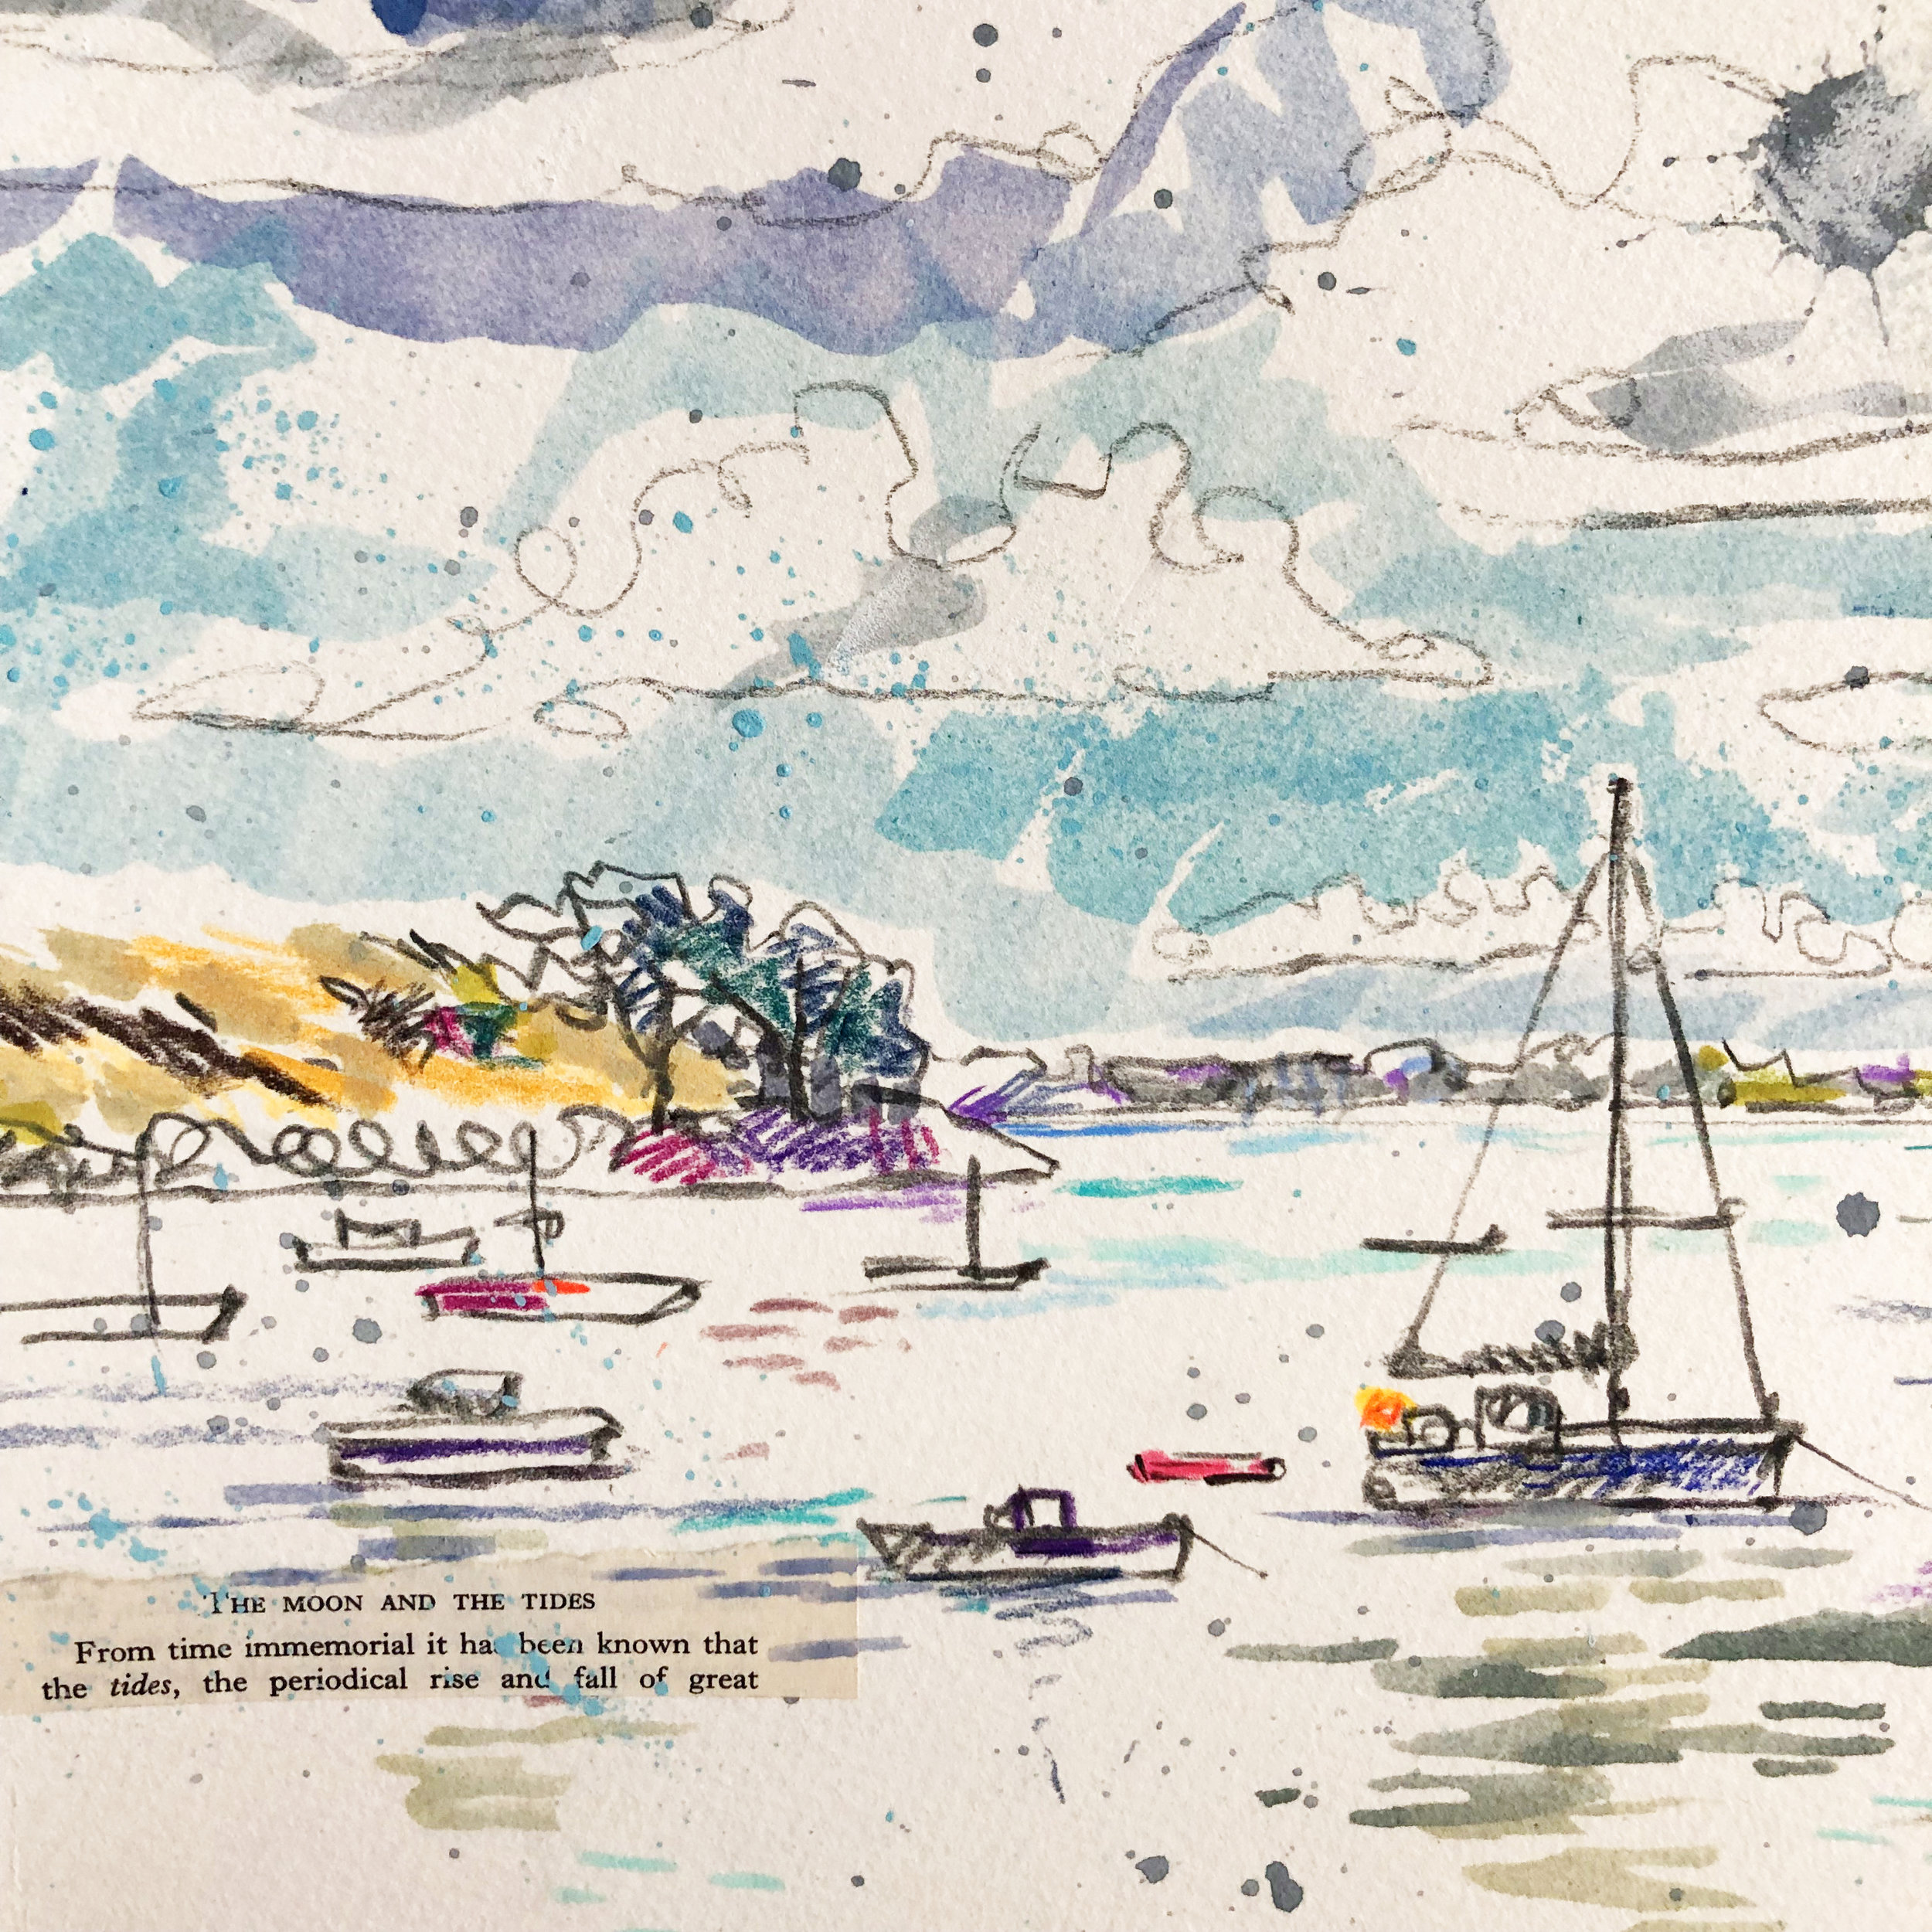 Seascape_St_Mawes_Kirsten_Jones_section1.jpg